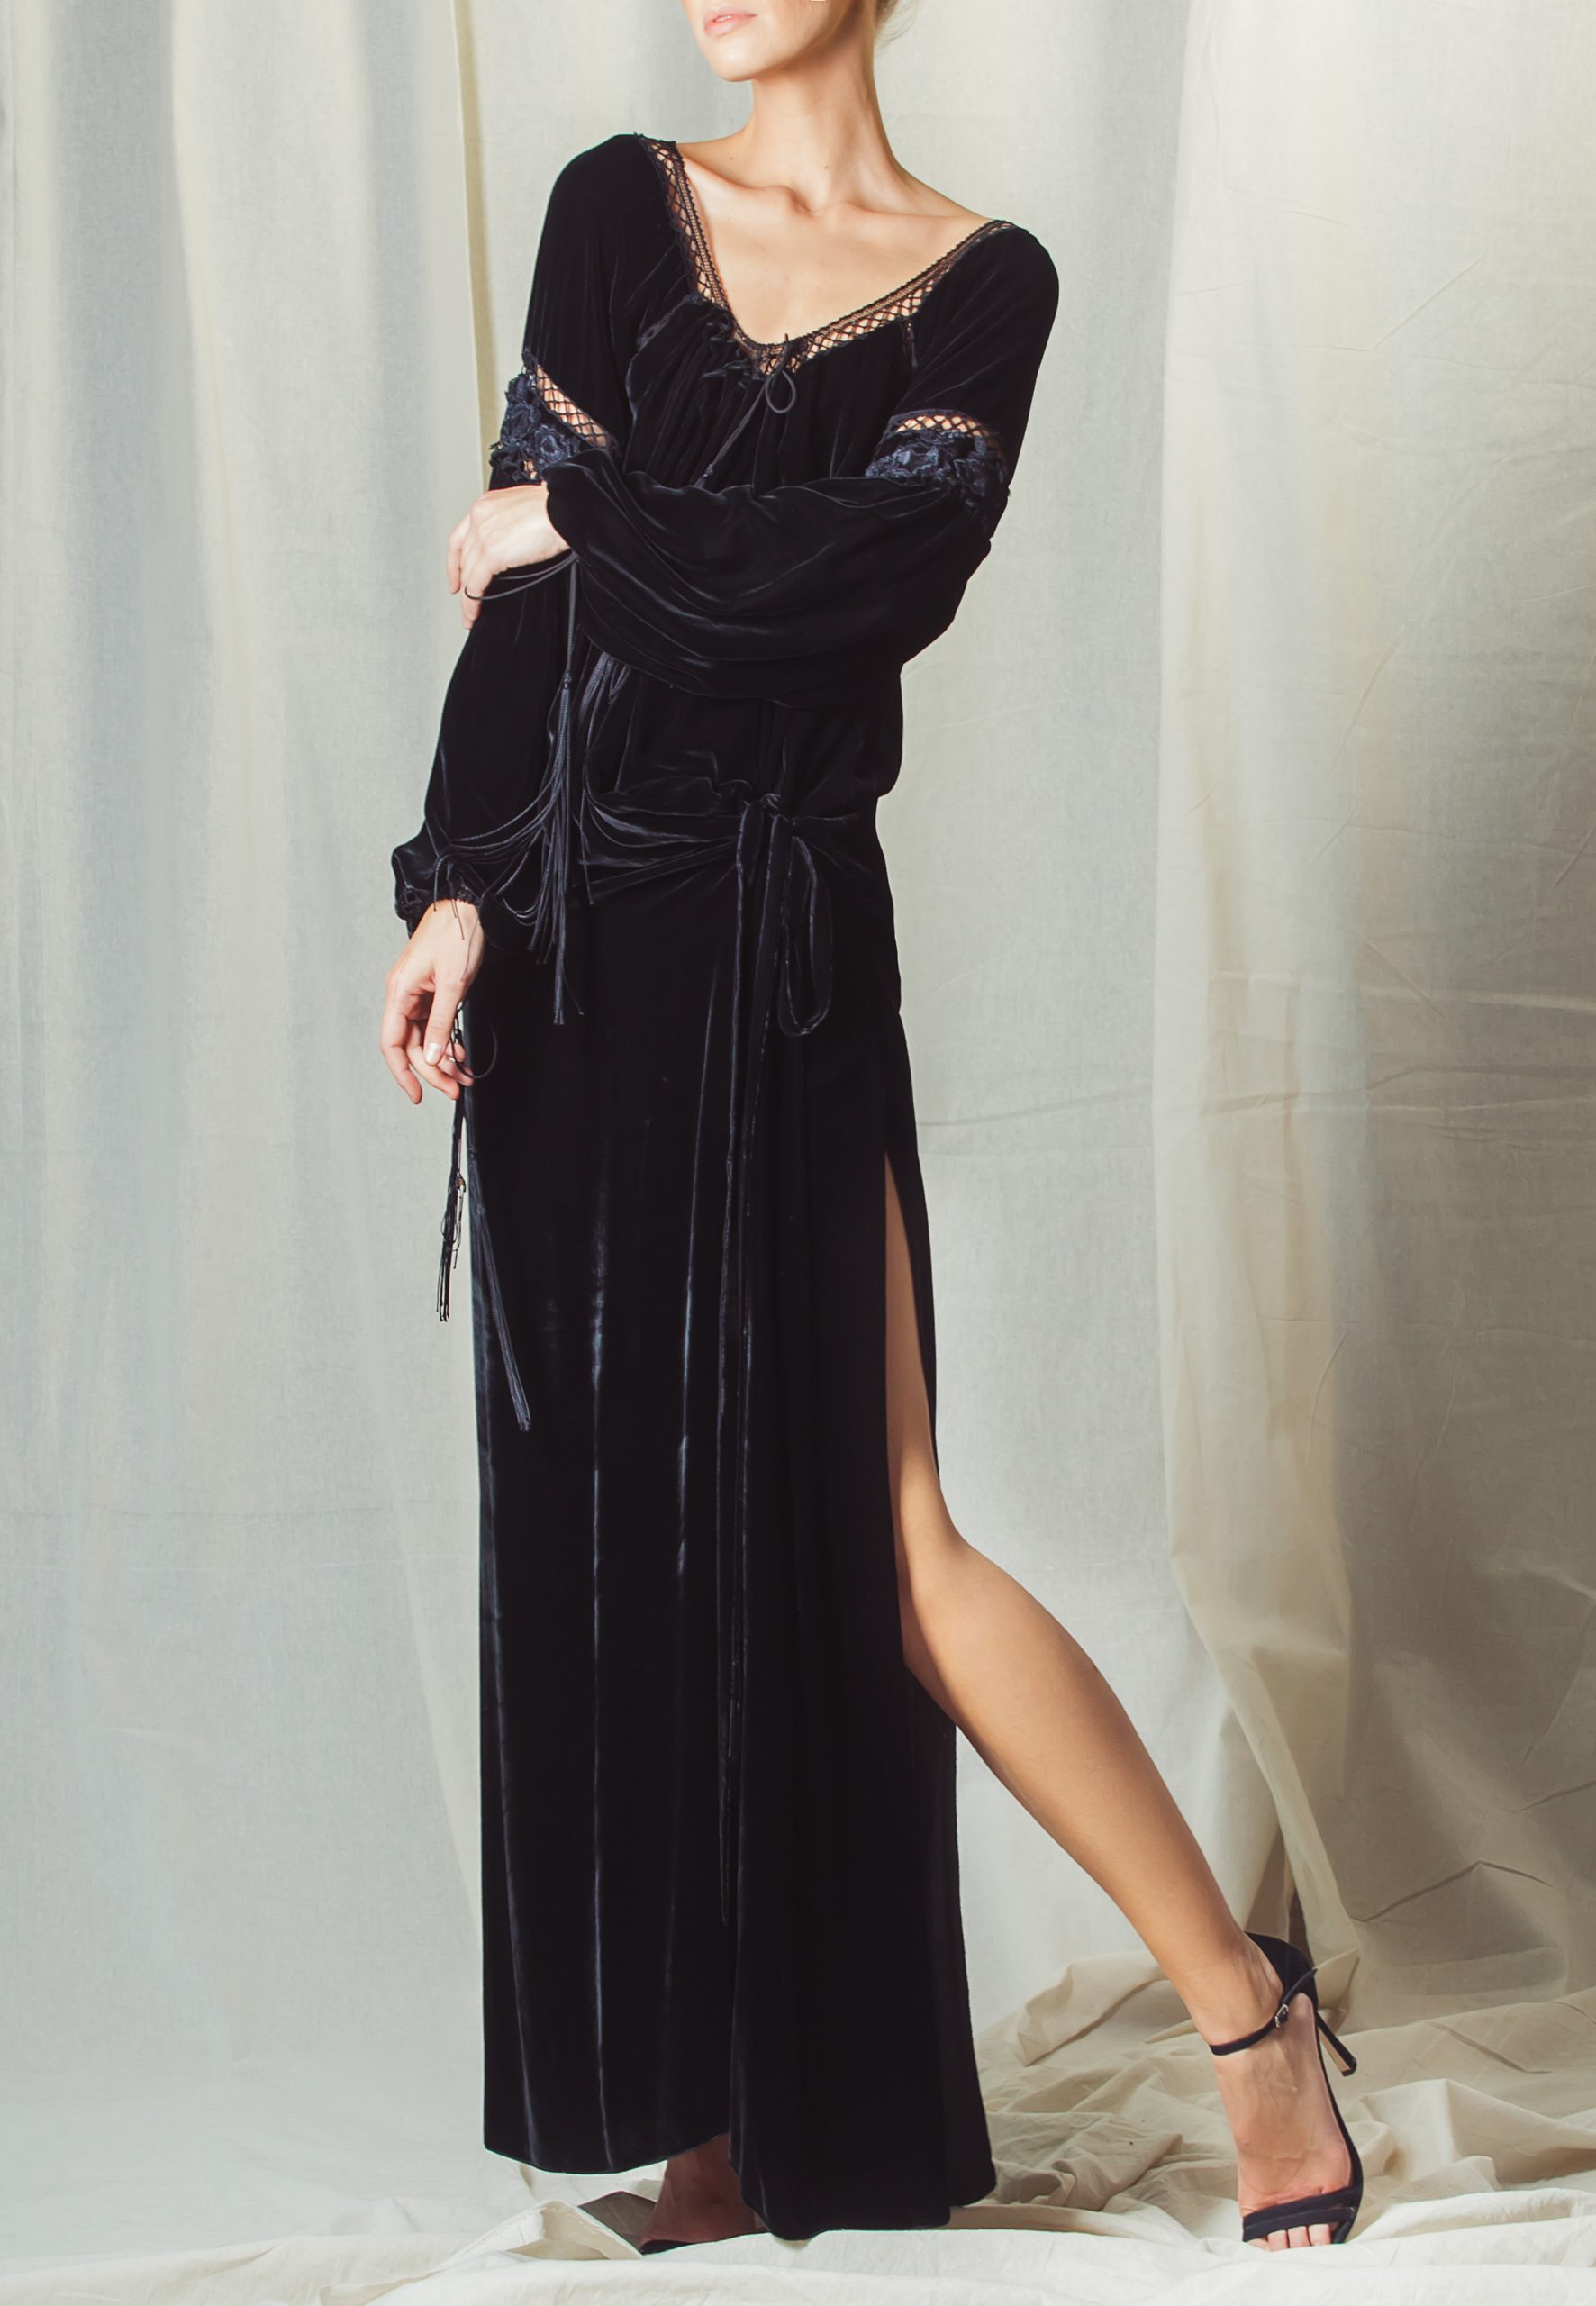 Black Velour dress with lace